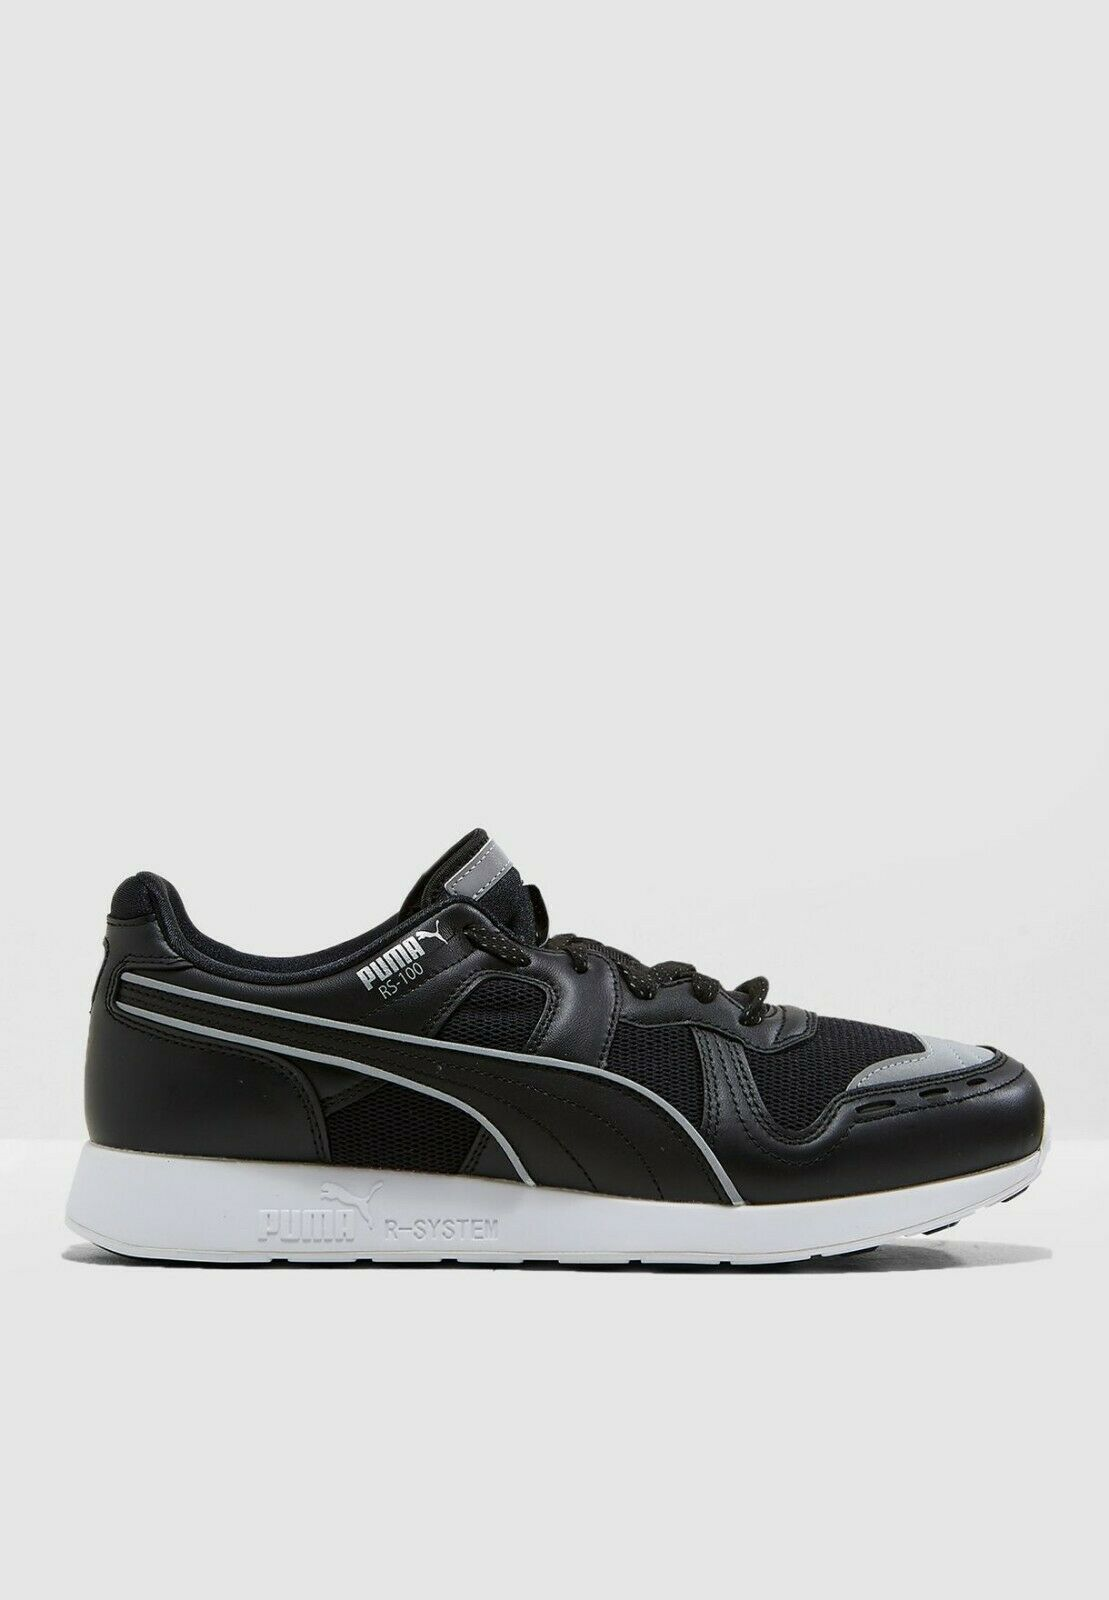 36802602 RS-100 Optic Hombre Mujer Running Zapatos Tenis Negro hit